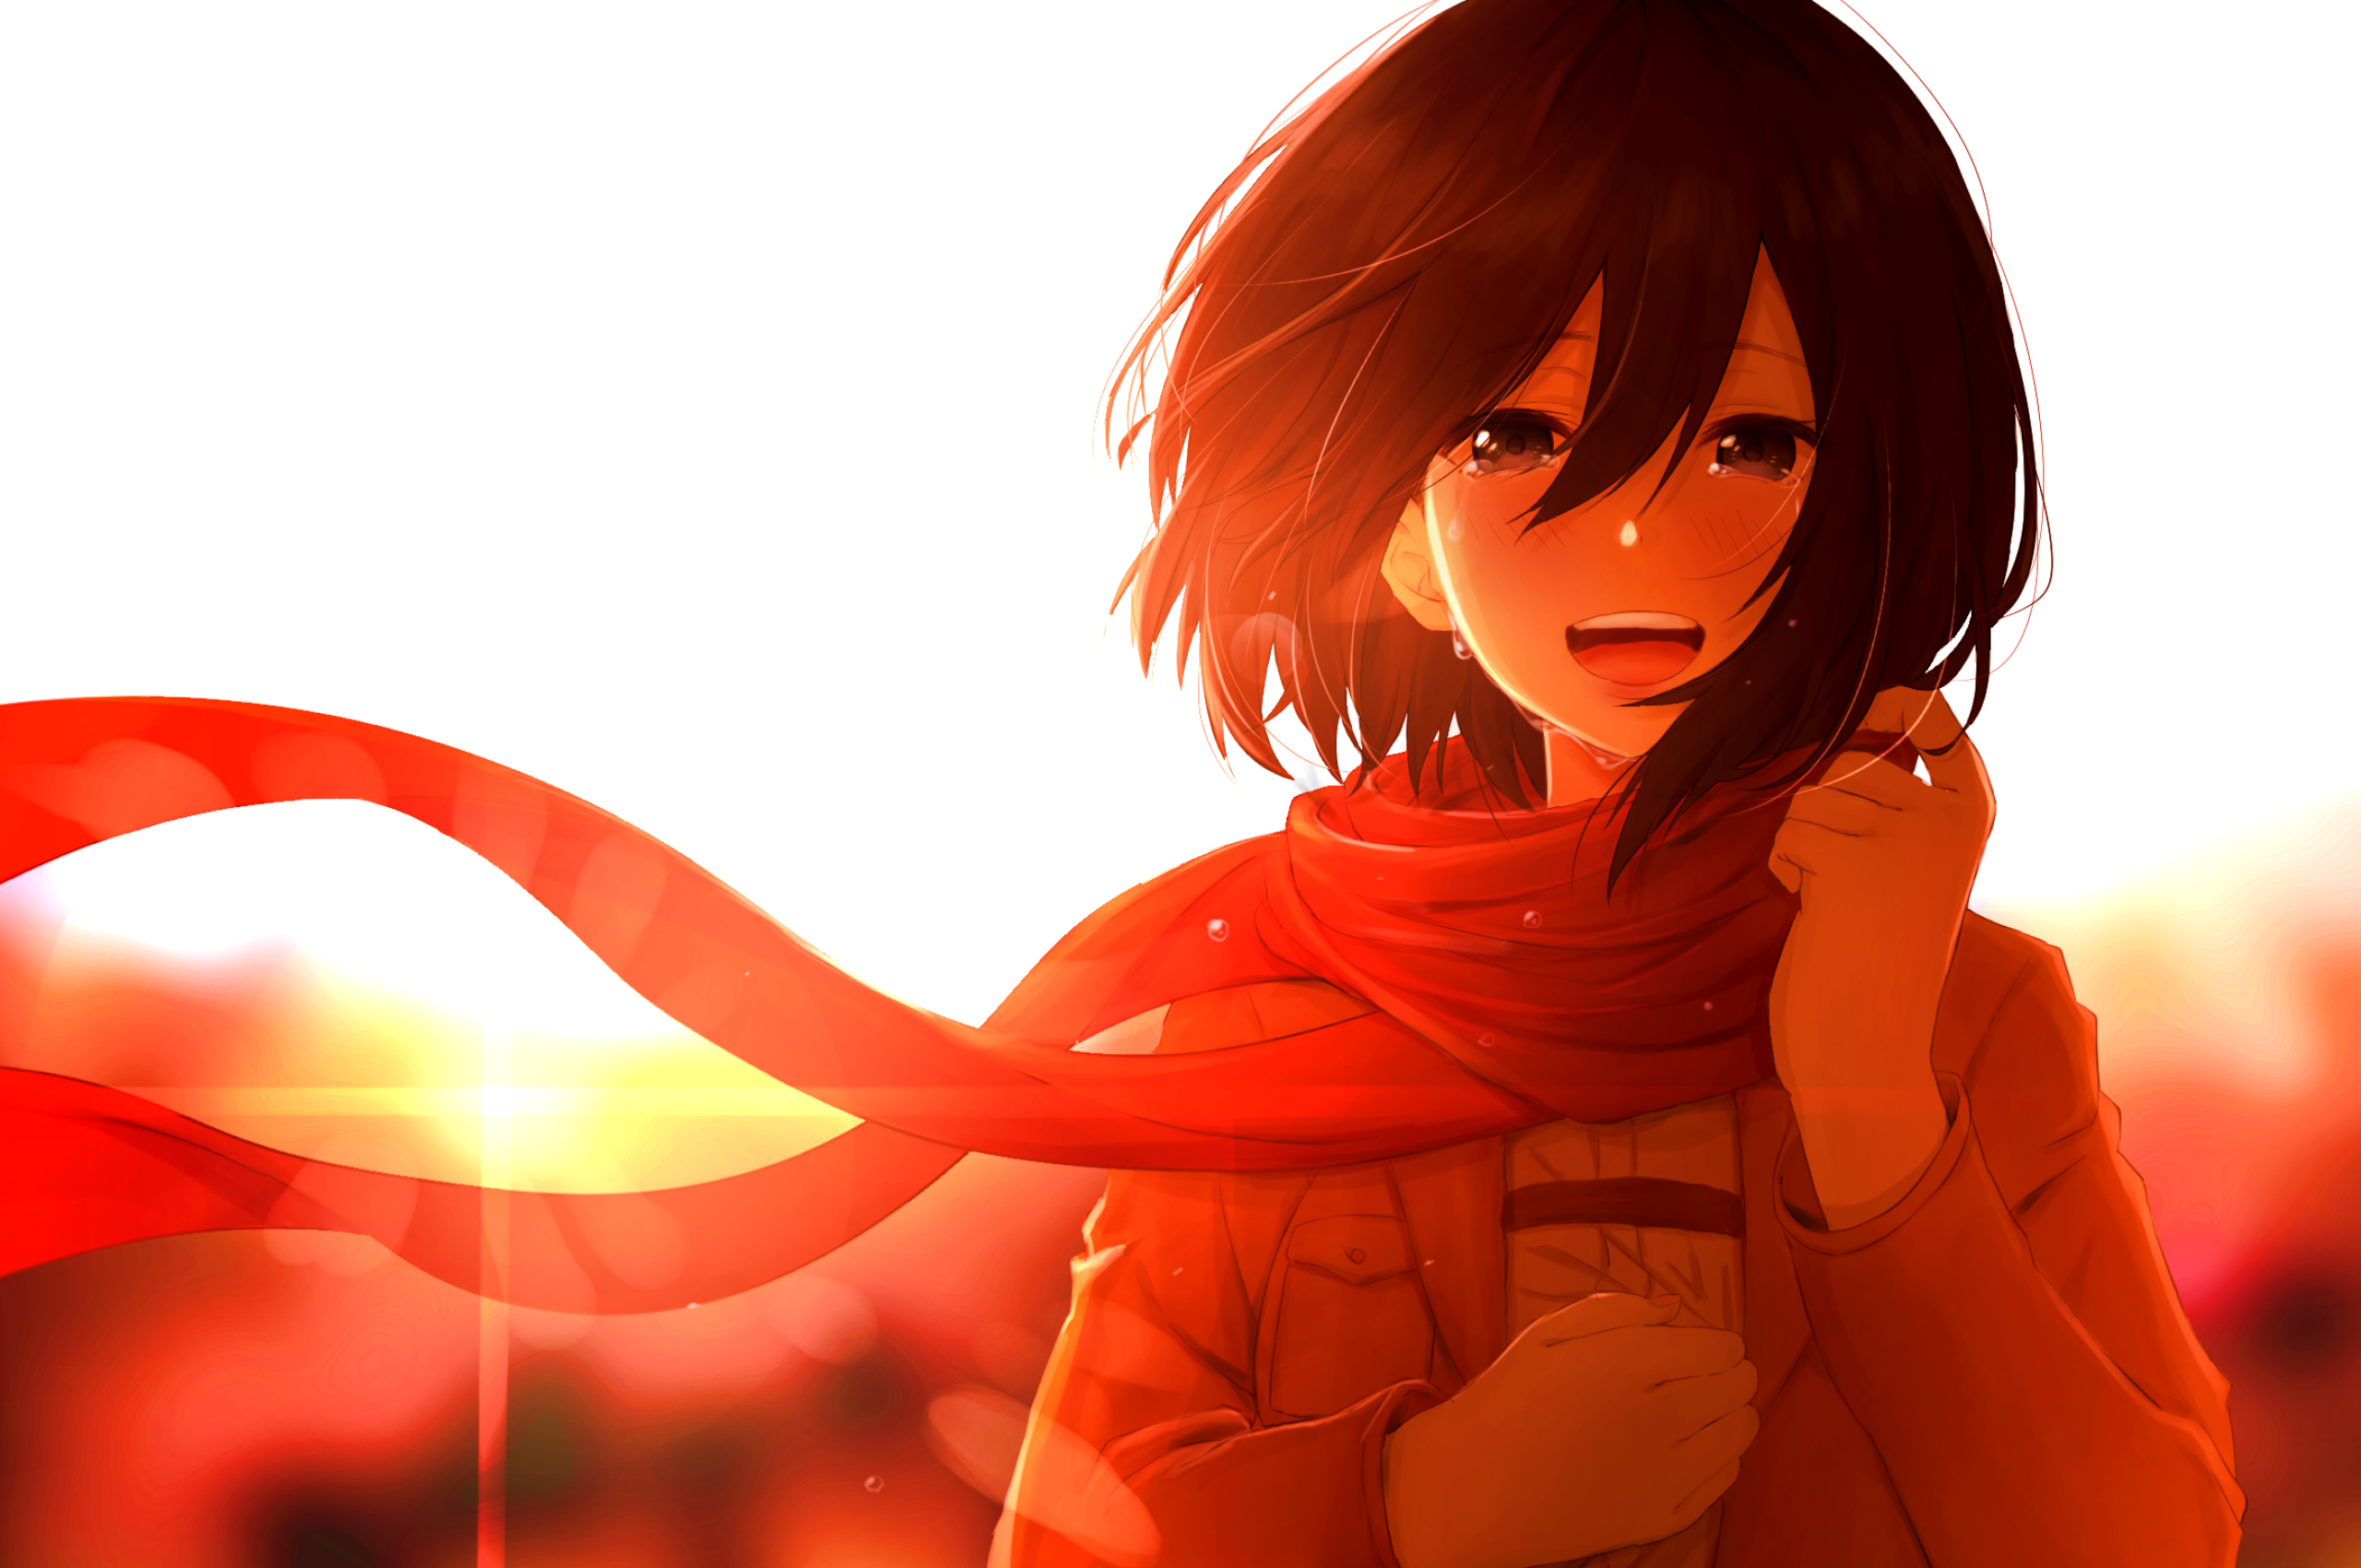 2560x1700 Mikasa Ackerman Anime Chromebook Pixel Wallpaper Hd Anime 4k Wallpapers Images Photos And Background